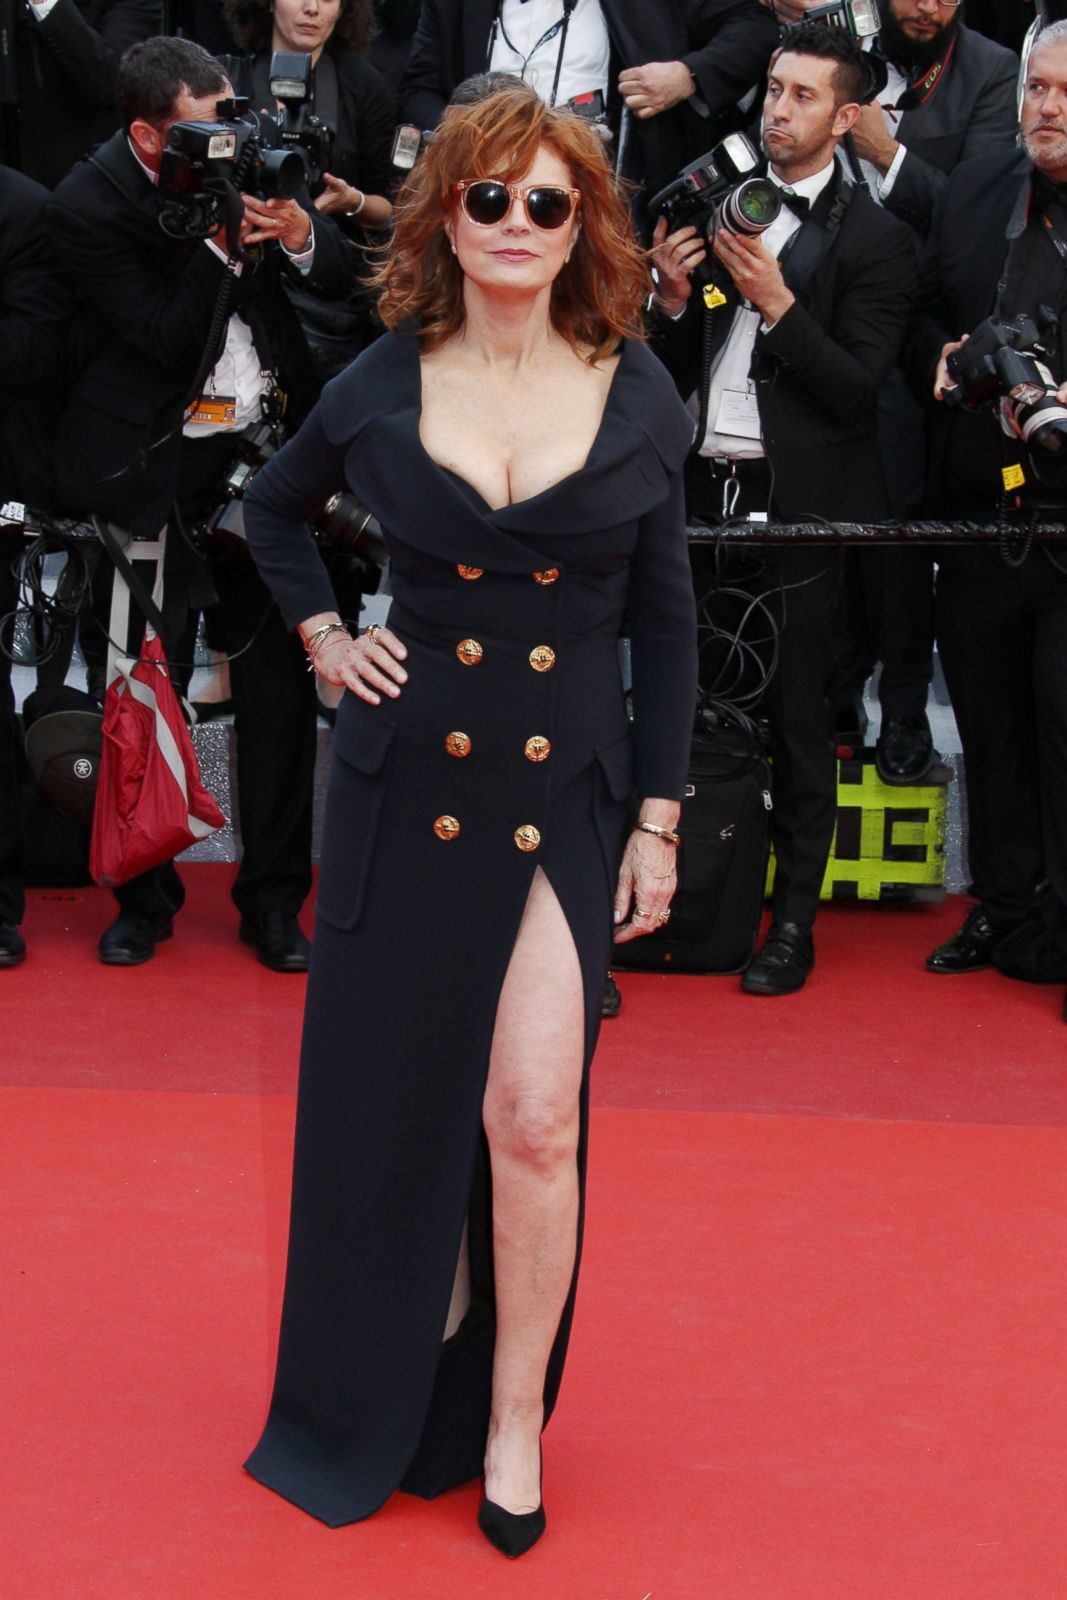 Susan Sarandon Shows Off Her Legs On The Red Carpet